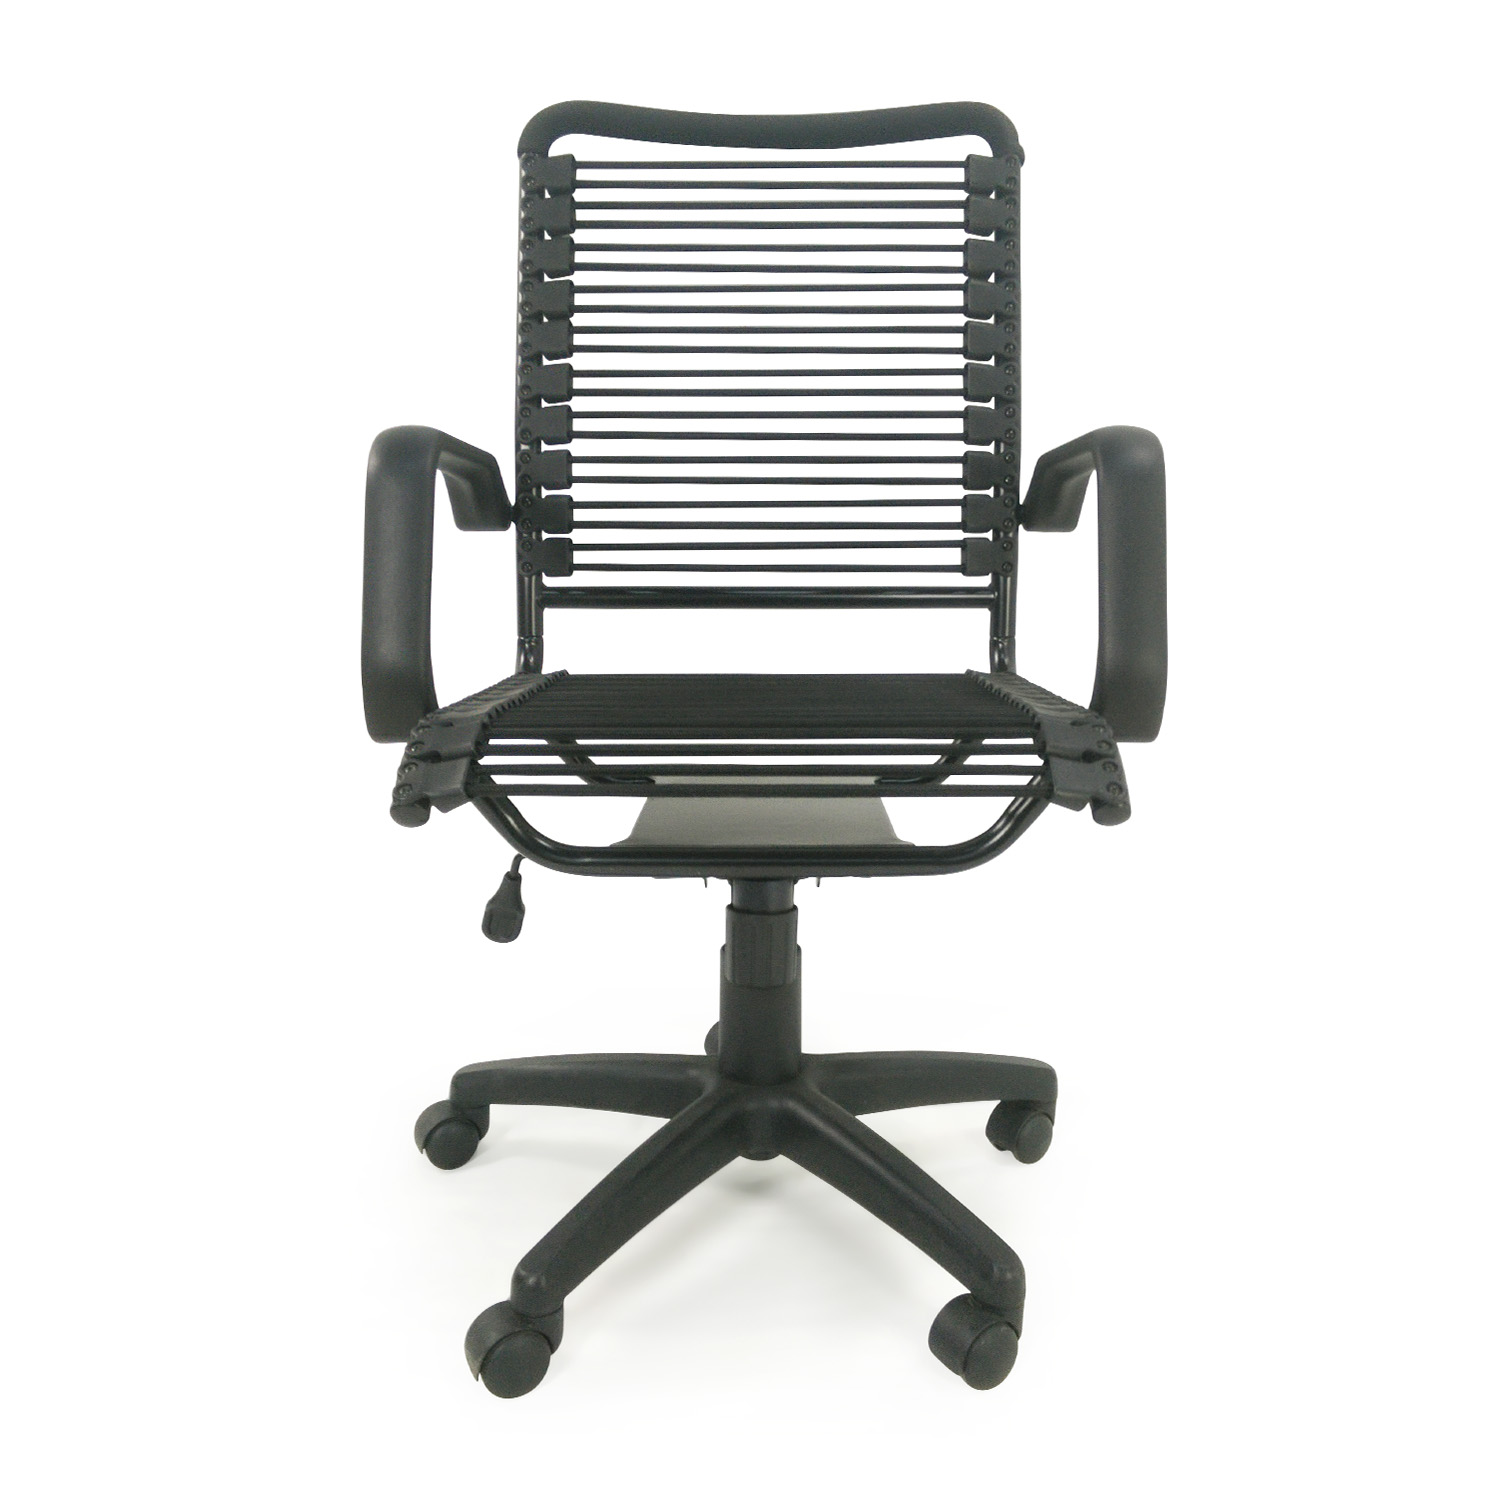 Euro Style Euro Style Bradley Bungie Office Chair discount